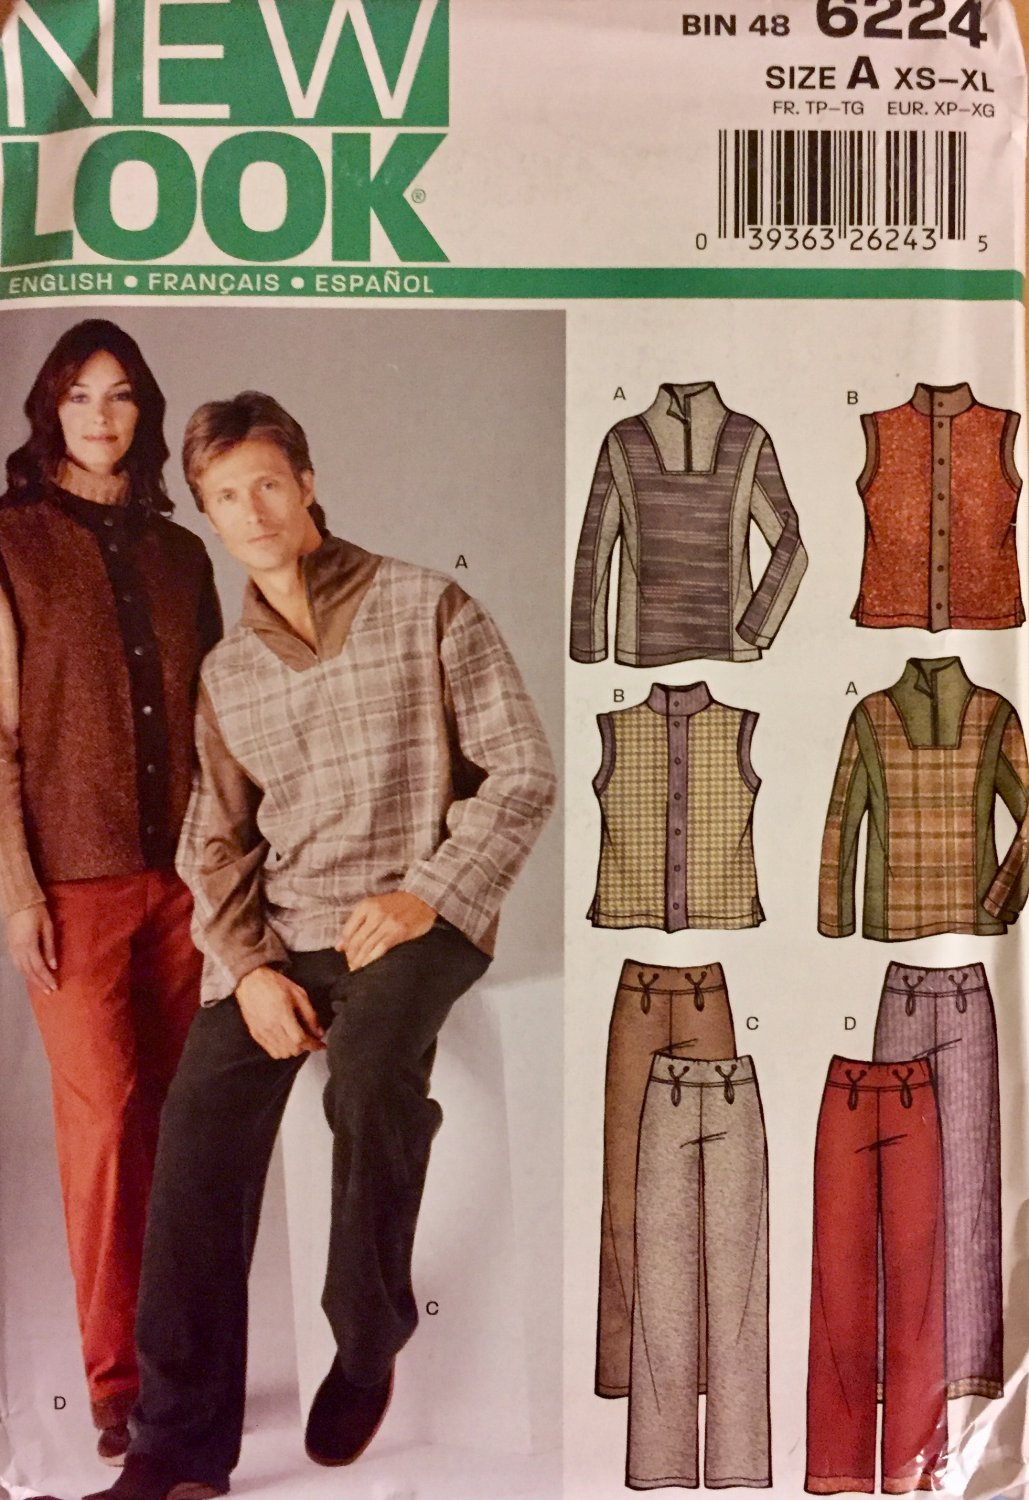 New Look 6224 Vest Slacks and Pullover Top Sewing Pattern size A  XS to XL Men or Women